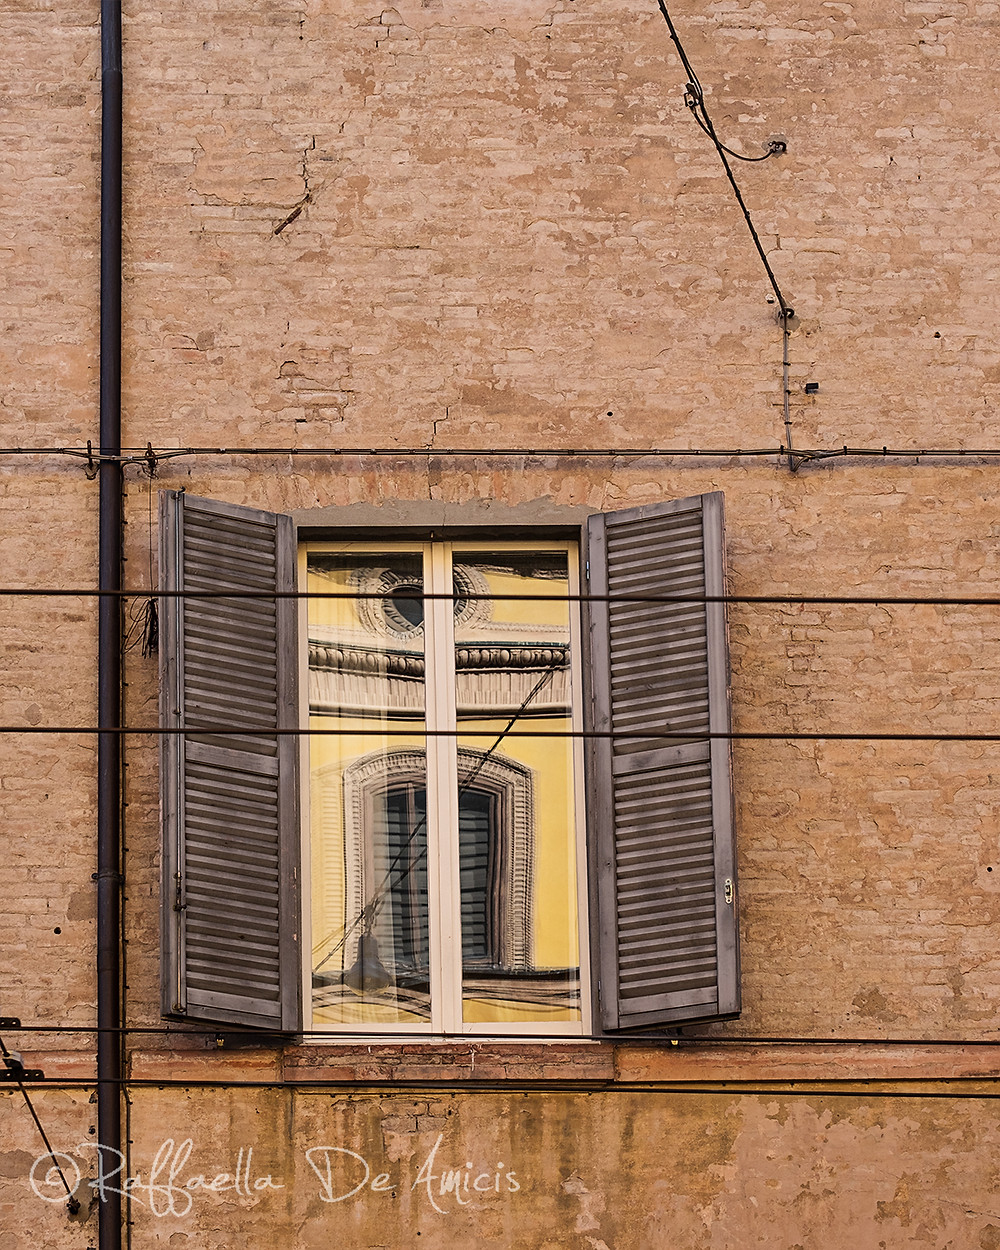 window with reflection in Modena, Italy